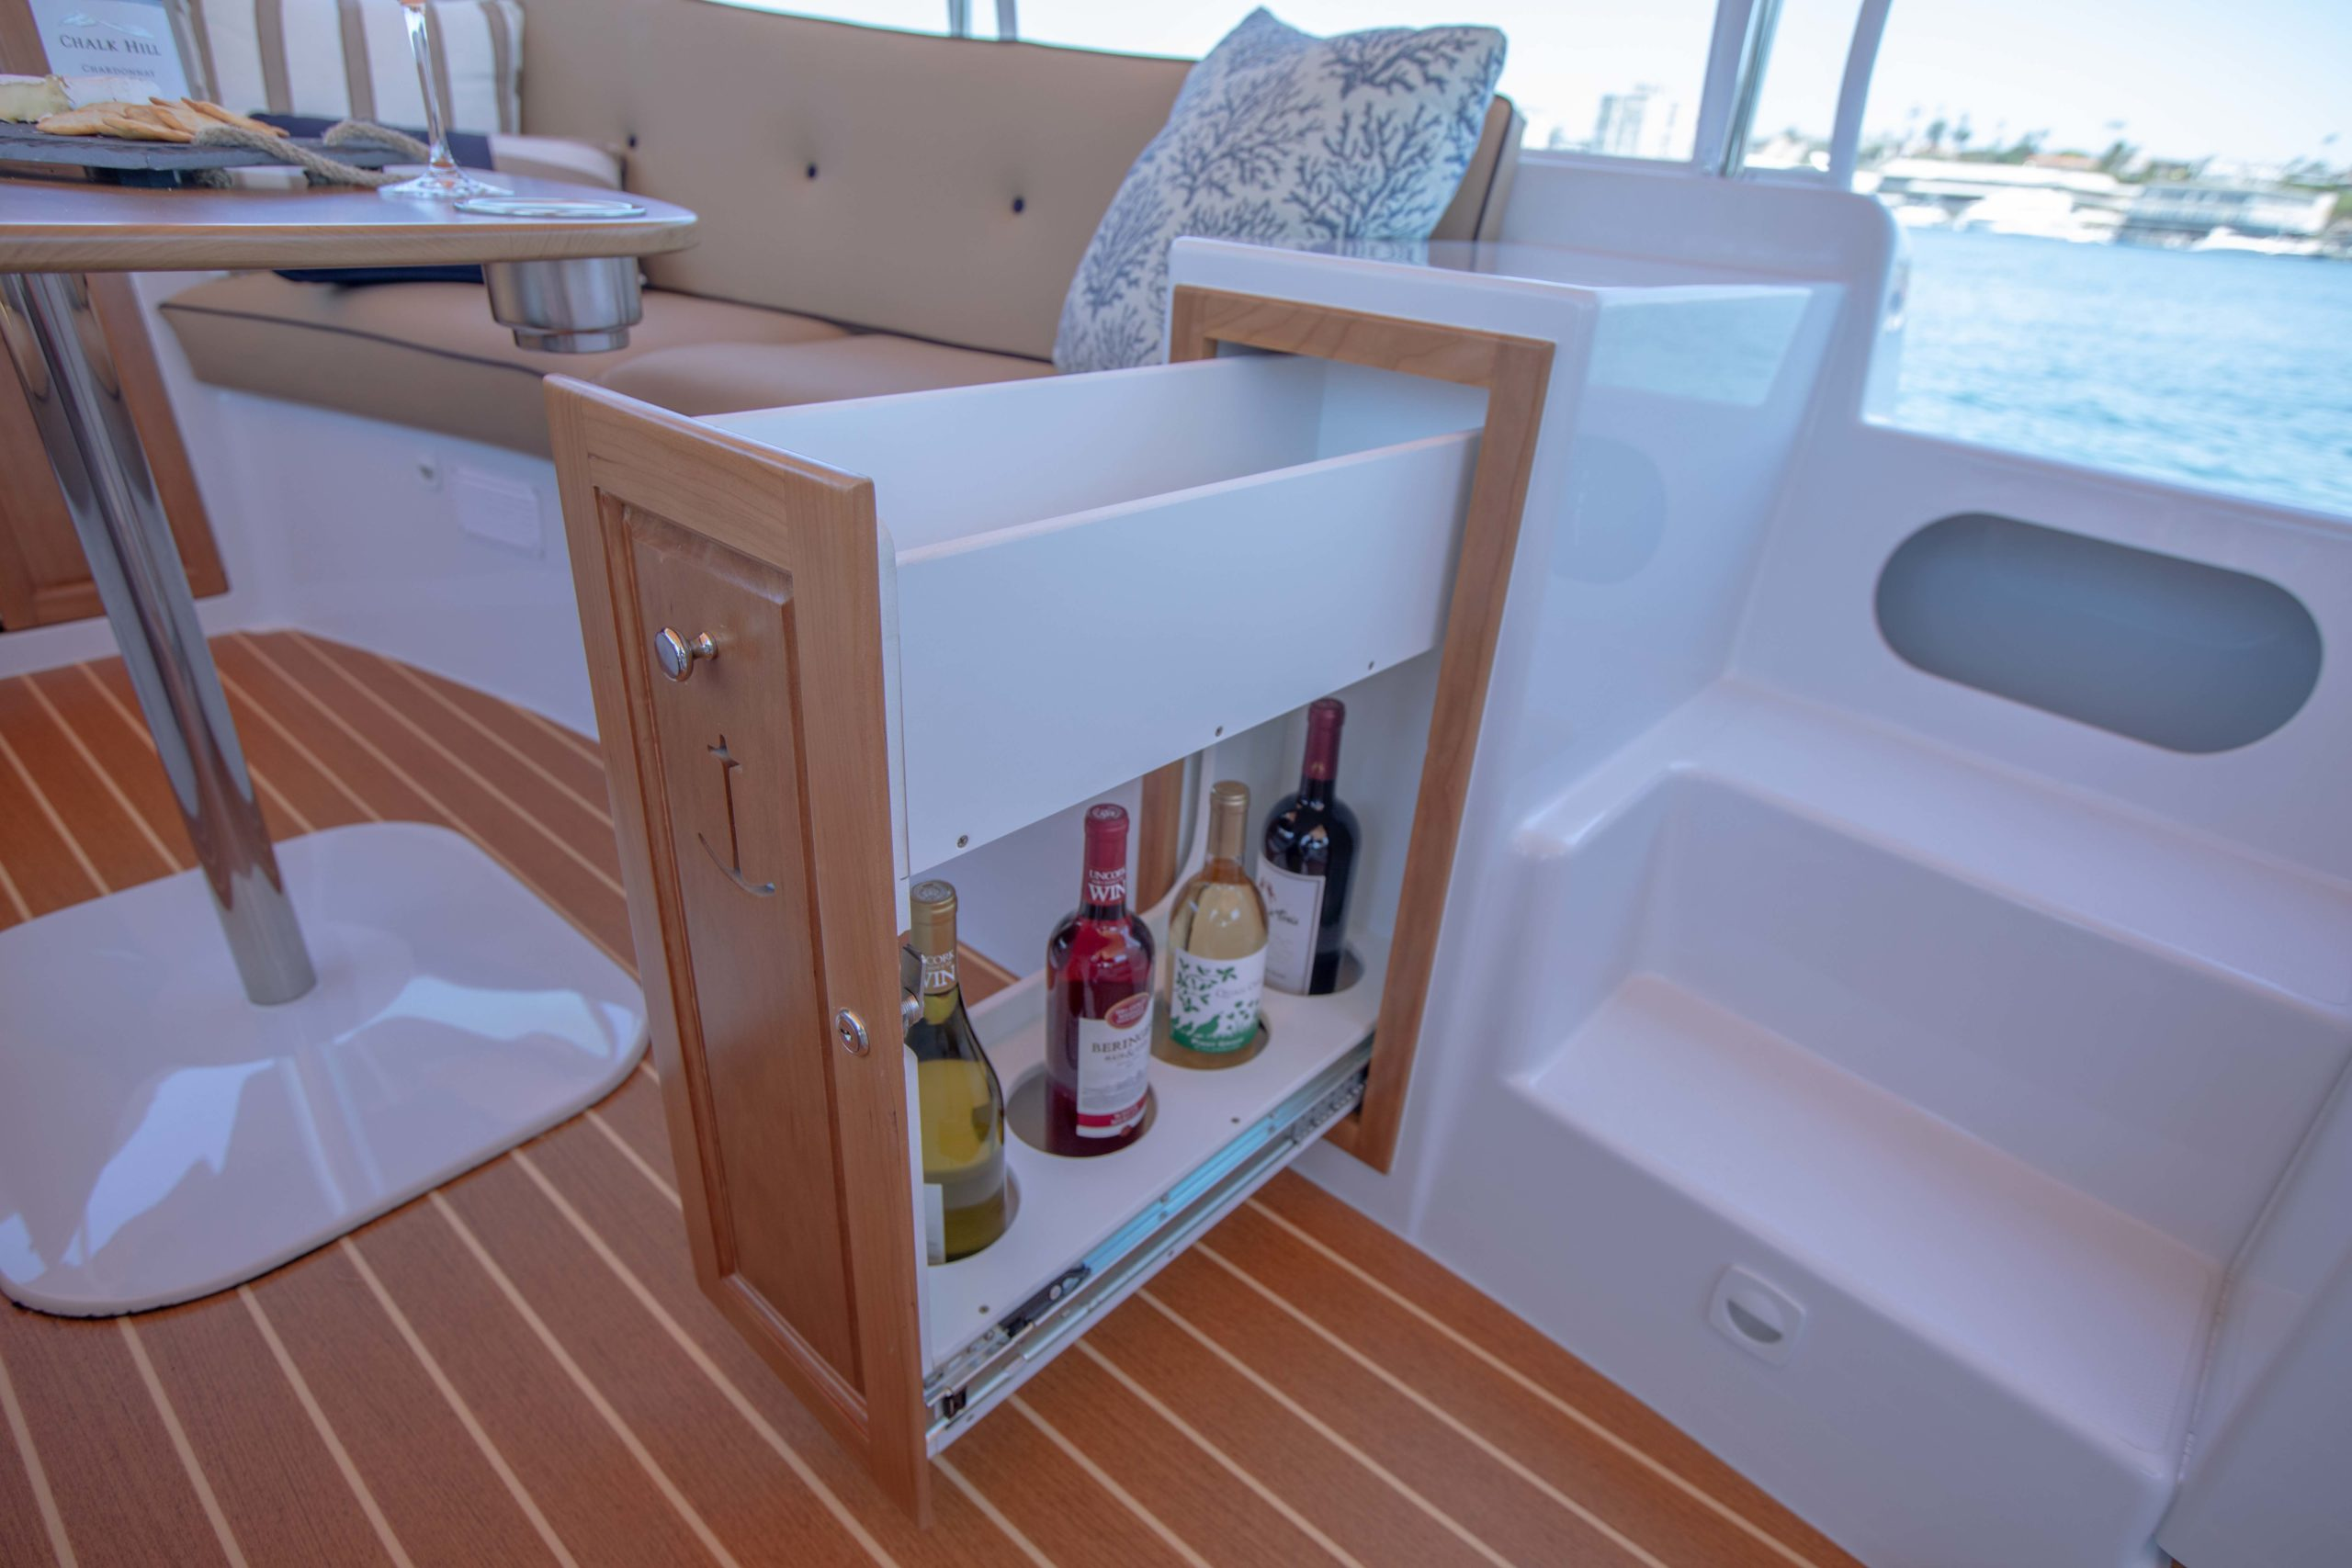 Photo of Duffy Electric Boats 22 foot Cuddy Cabin interior, showing the wine drawer open stocked with wine and other items in the top space.